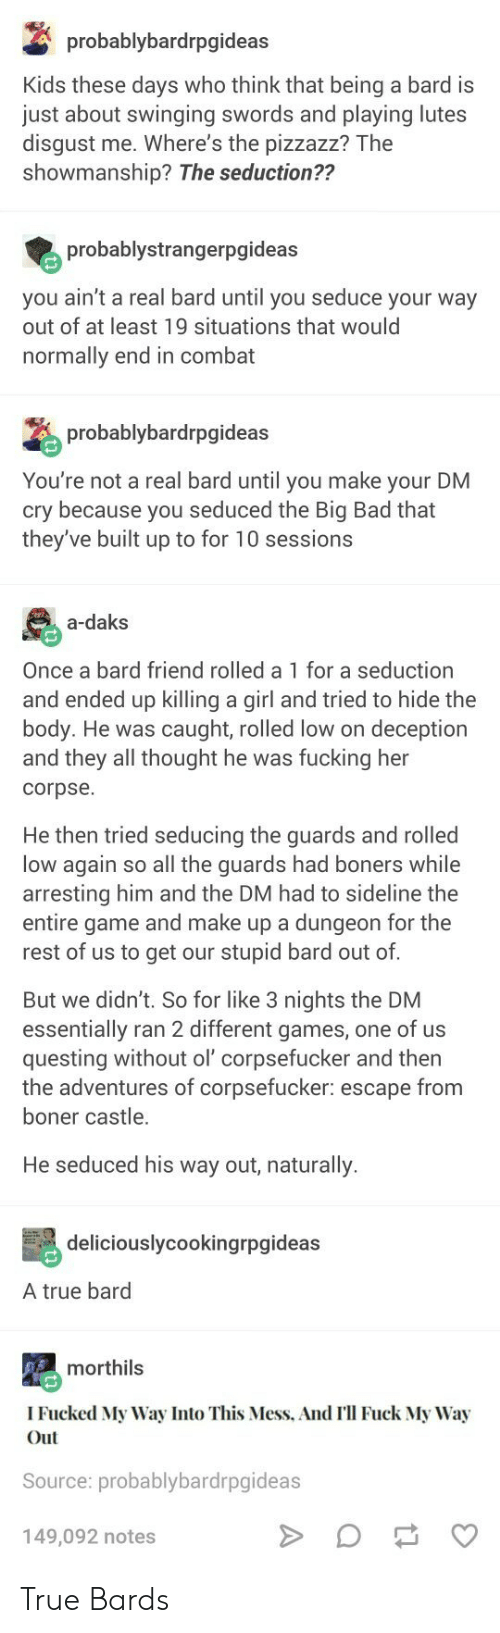 Bad, Boner, and Fucking: probablybardrpgideas  Kids these days who think that being a bard is  just about swinging swords and playing lutes  disgust me. Where's the pizzazz? The  showmanship? The seduction??  probablystrangerpgideas  you ain't a real bard until you seduce your way  out of at least 19 situations that would  normally end in combat  probablybardrpgid  You're not a real bard until you make your DM  cry because you seduced the Big Bad that  they've built up to for 10 sessions  a-daks  Once a bard friend rolled a 1 for a seduction  and ended up killing a girl and tried to hide the  body. He was caught, rolled low on deception  and they all thought he was fucking her  corpse.  He then tried seducing the guards and rolled  low again so all the guards had boners while  arresting him and the DM had to sideline the  entire game and make up a dungeon for the  rest of us to get our stupid bard out of  But we didn't. So for like 3 nights the DNM  essentially ran 2 different games, one of us  questing without ol' corpsefucker and then  the adventures of corpsefucker: escape from  boner castle.  He seduced his way out, naturally.  deliciouslycookingrpgideas  A true bard  morthils  I Fucked My Way Into This Mess, And I'll Fuck My Way  Out  Source: probablybardrpgideas  149,092 notes True Bards